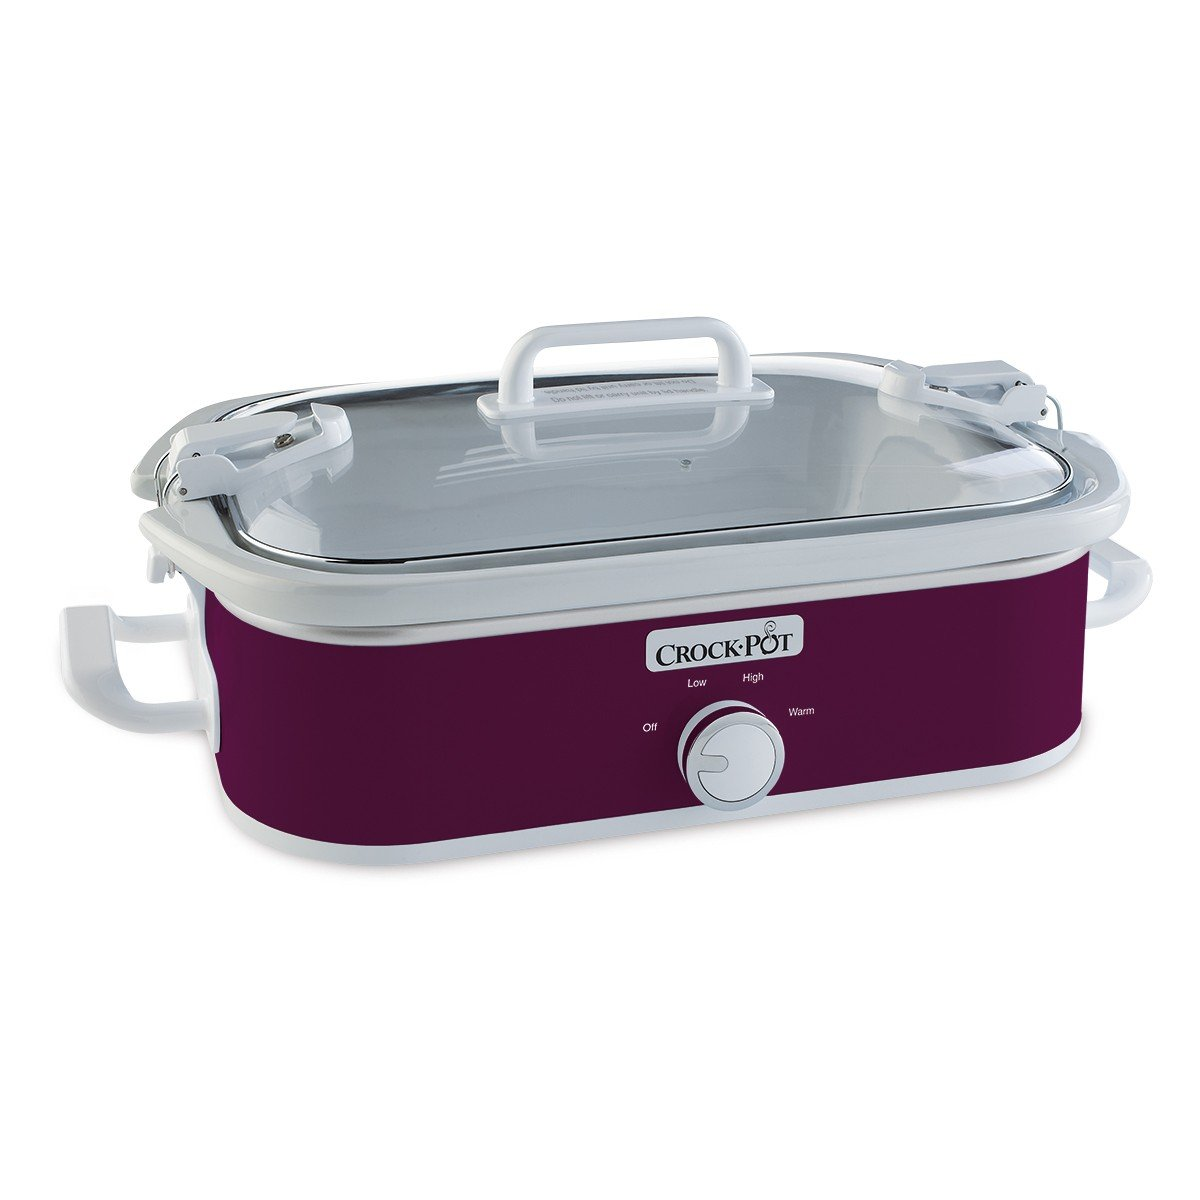 Crock-Pot 3.5-Quart Casserole Crock Manual Slow Cooker, Perfect Plum